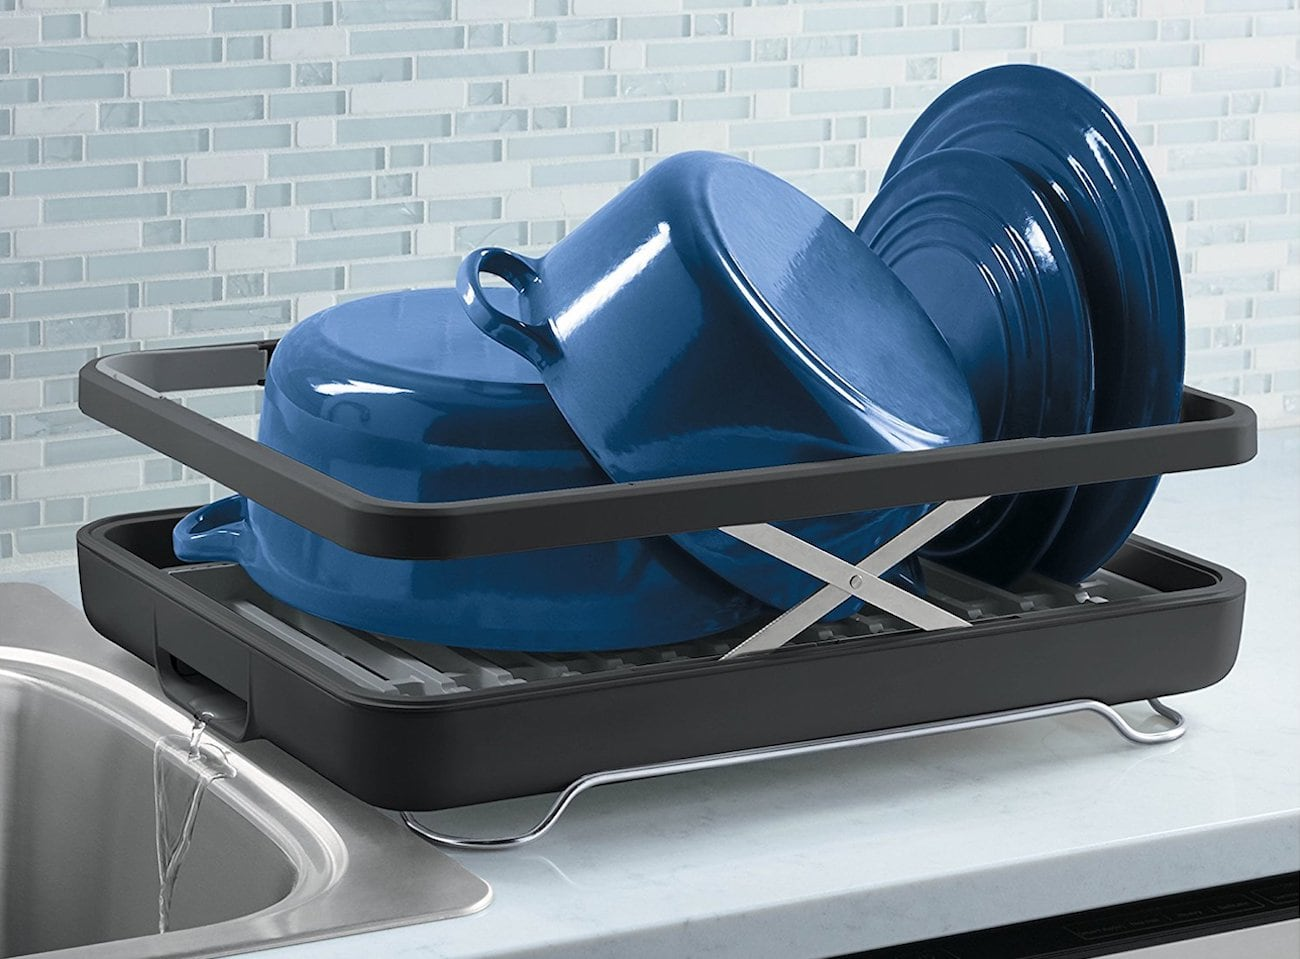 Kohler Lift Collapsible Dish Rack